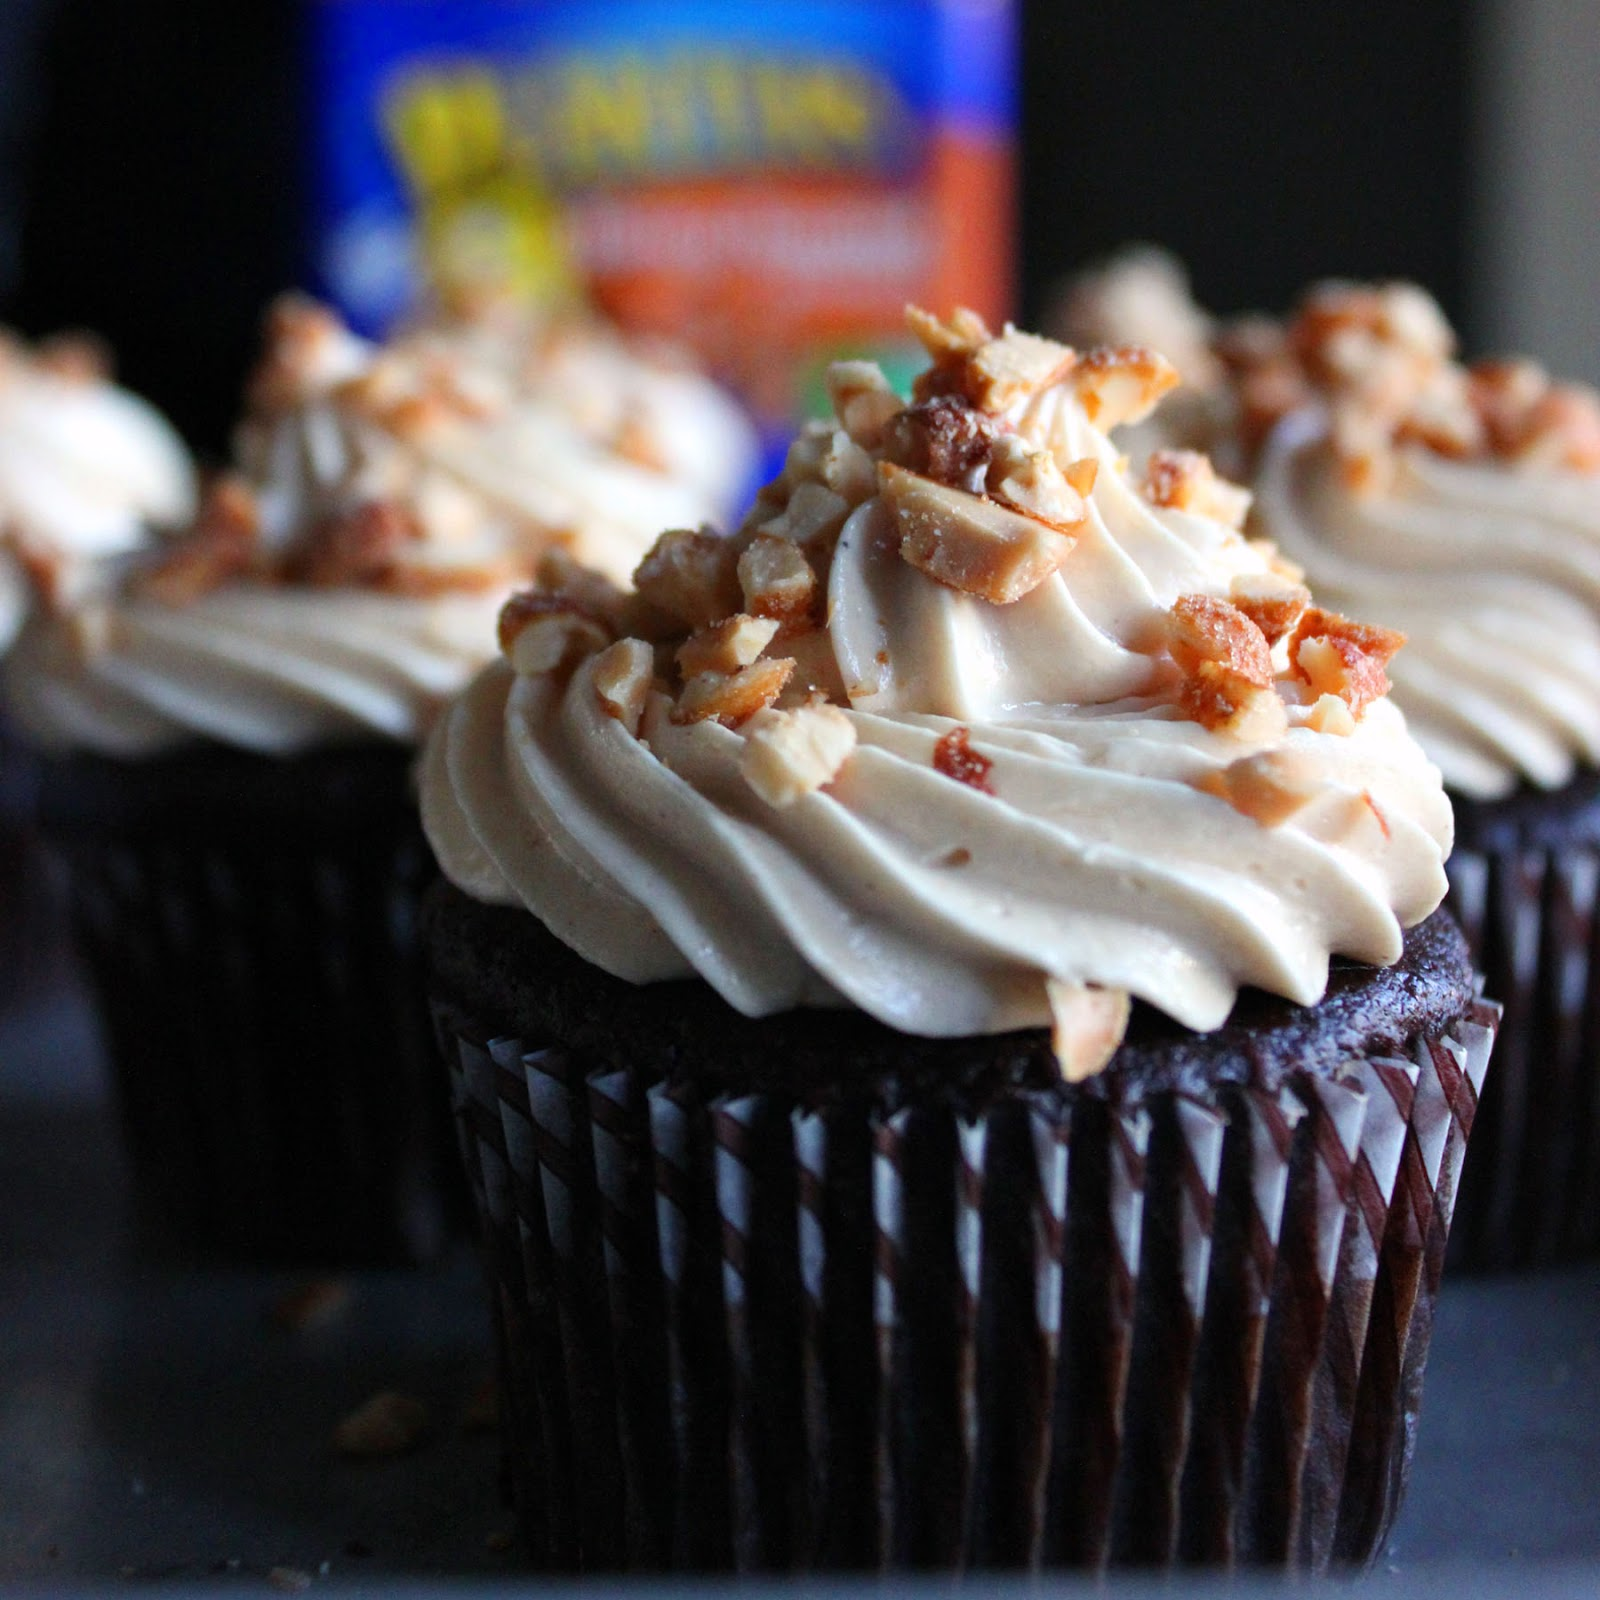 Chocolate Cupcake With Peanut Butter Filling